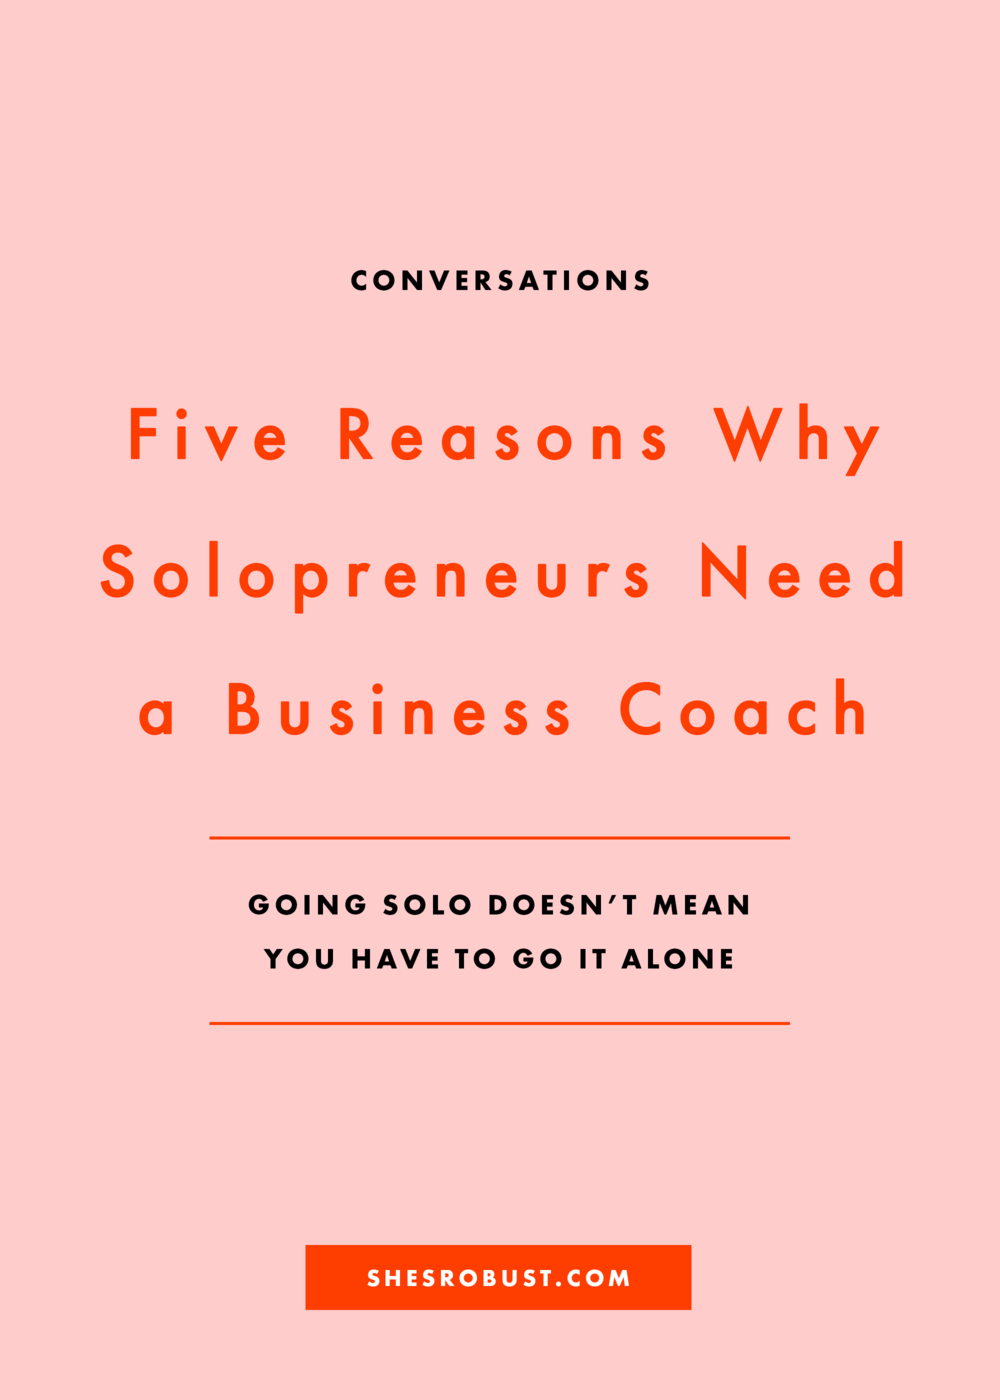 5 Reasons Why Solopreneurs Need a Coach